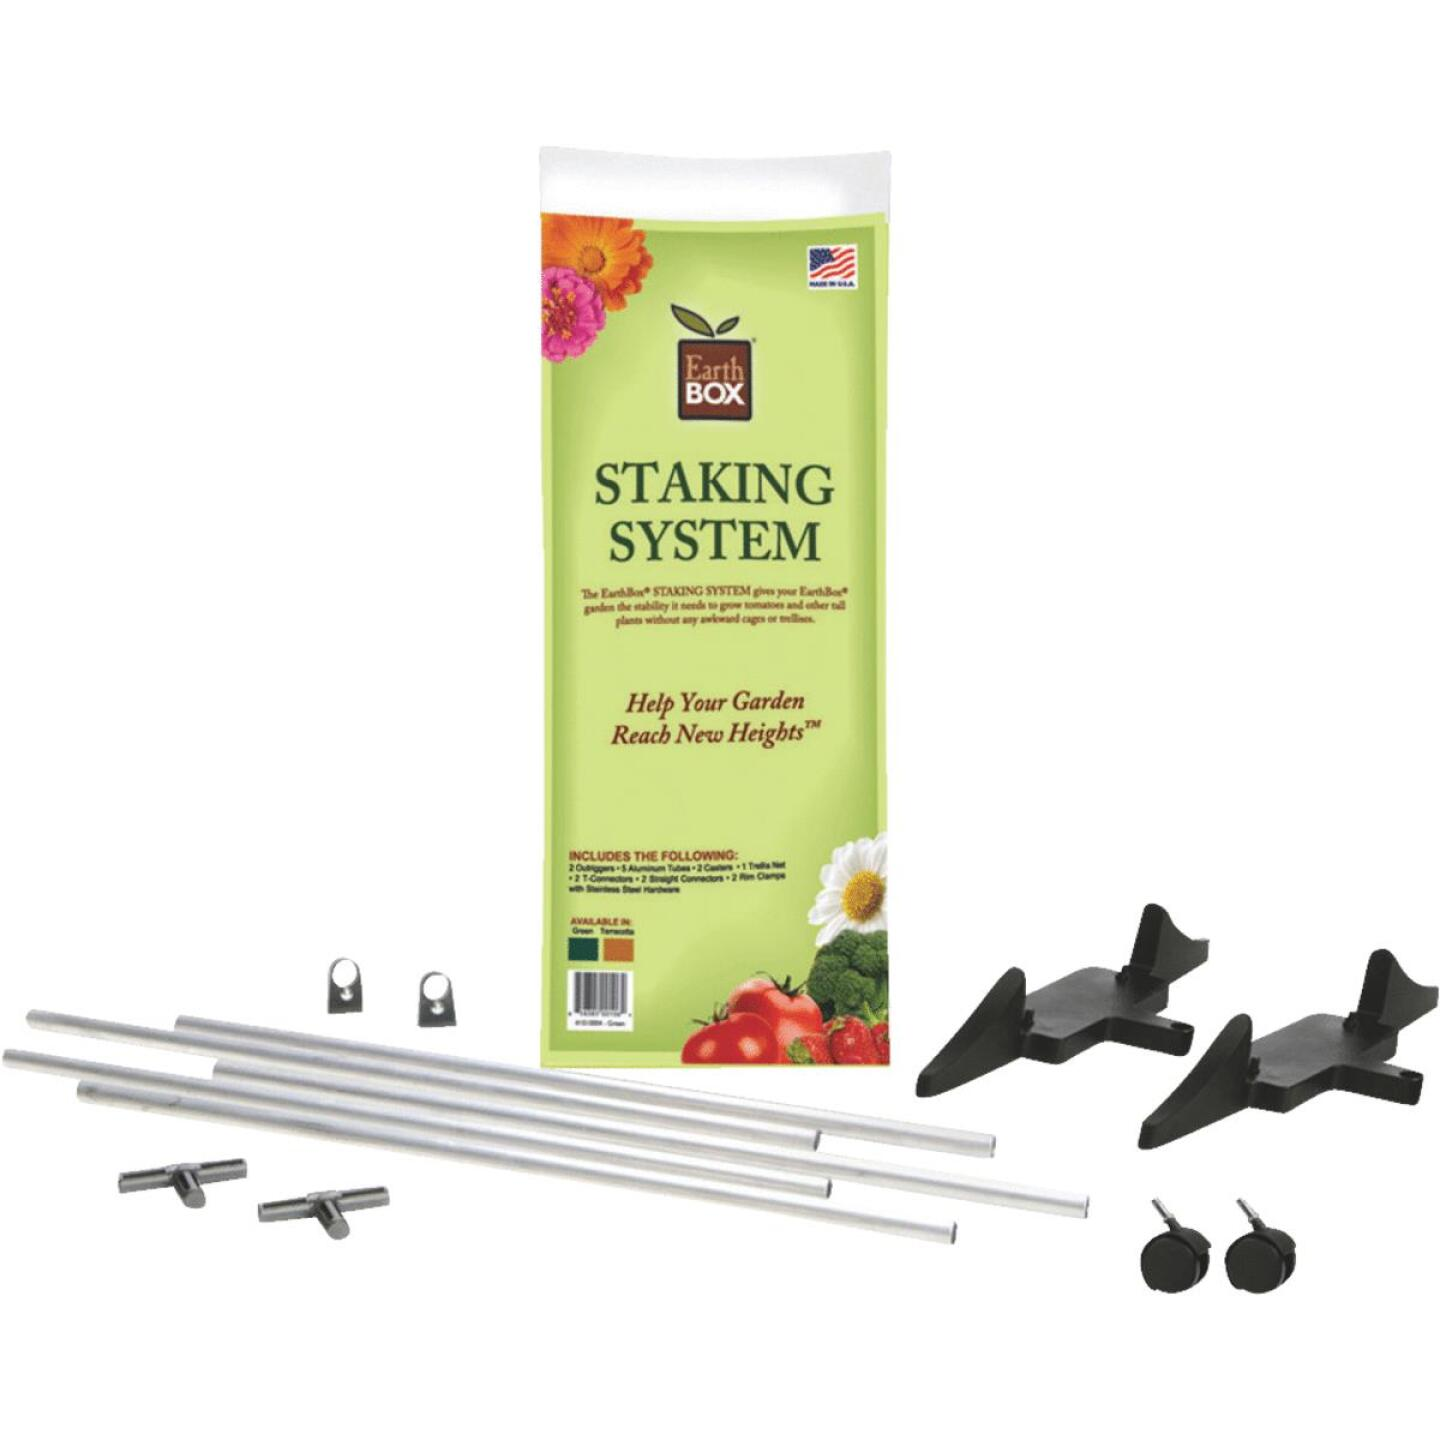 EarthBOX 60 In. Green Aluminum Plant Stake Staking System Image 1